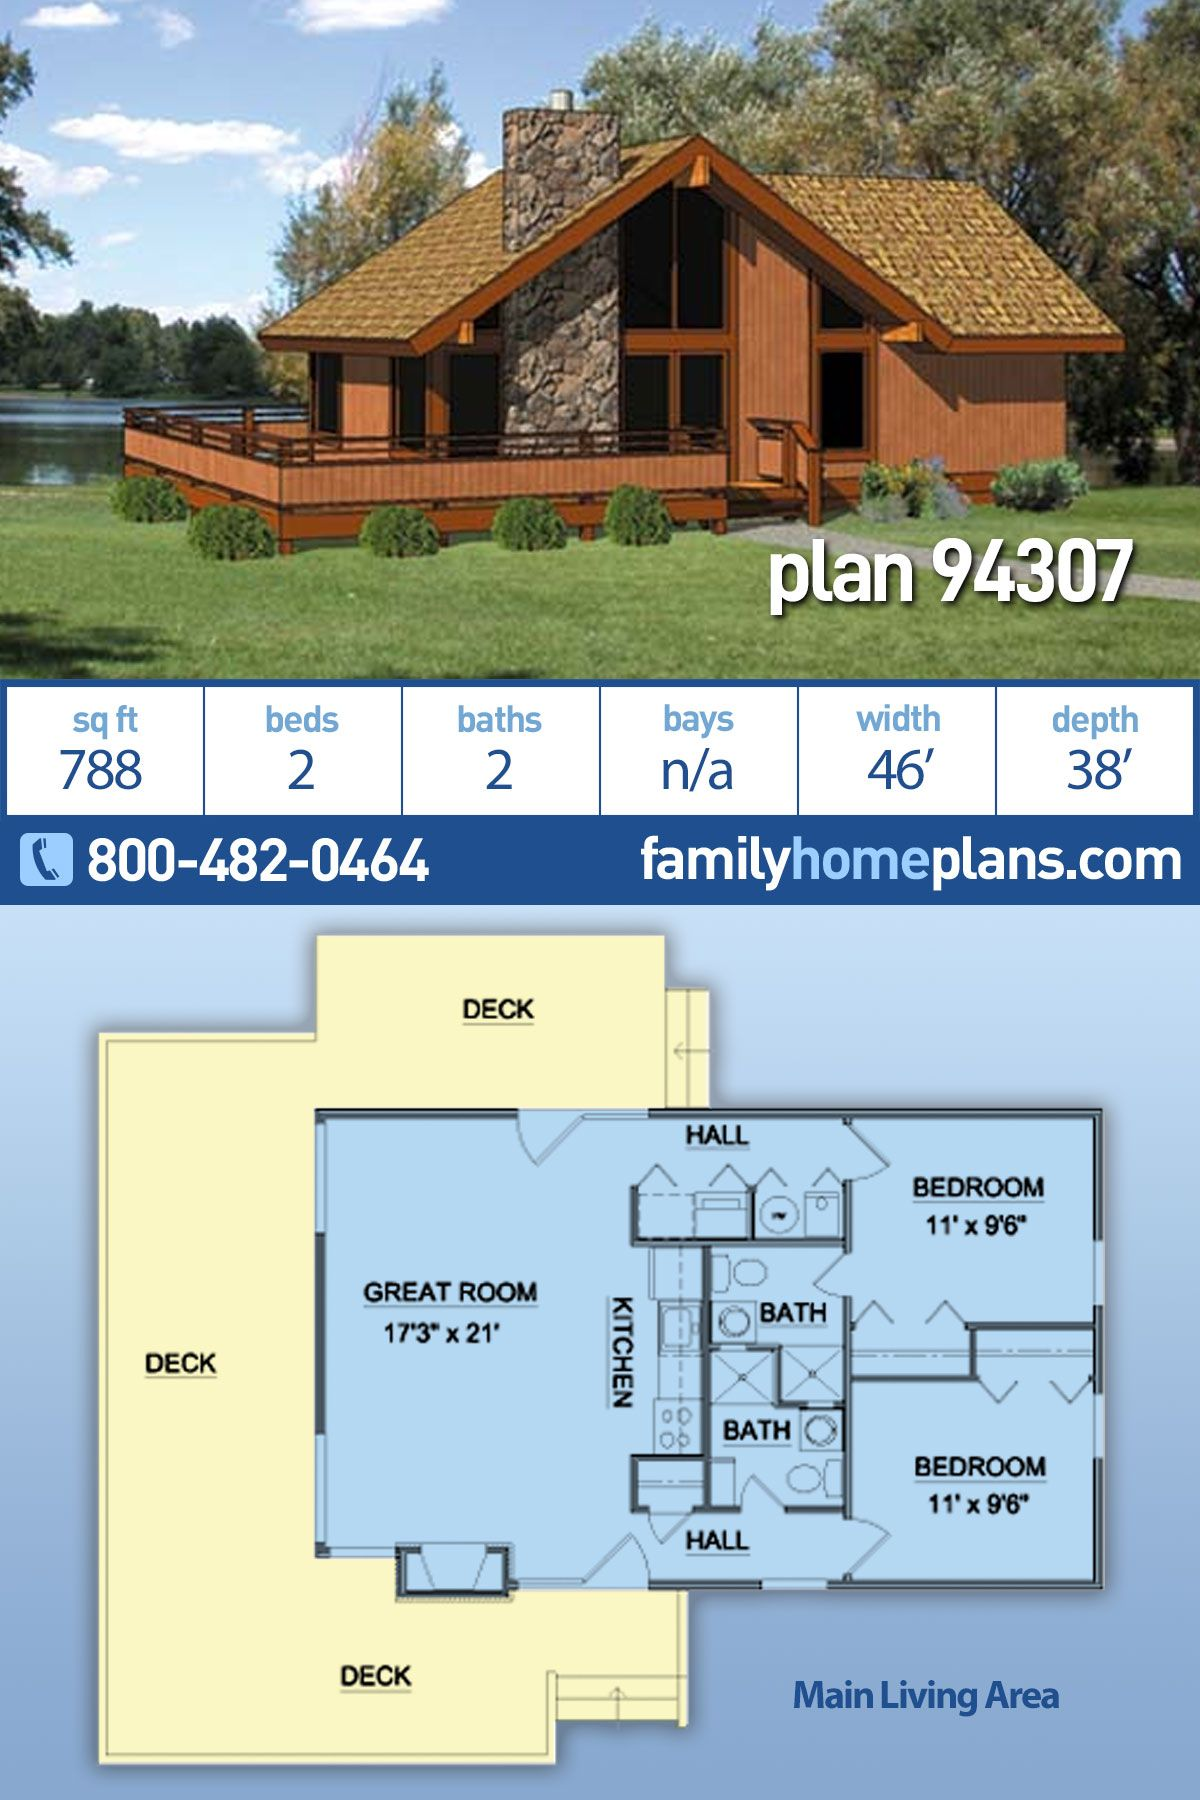 Is This The Perfect Small Home Plan At 788 Sq Ft Maybe A